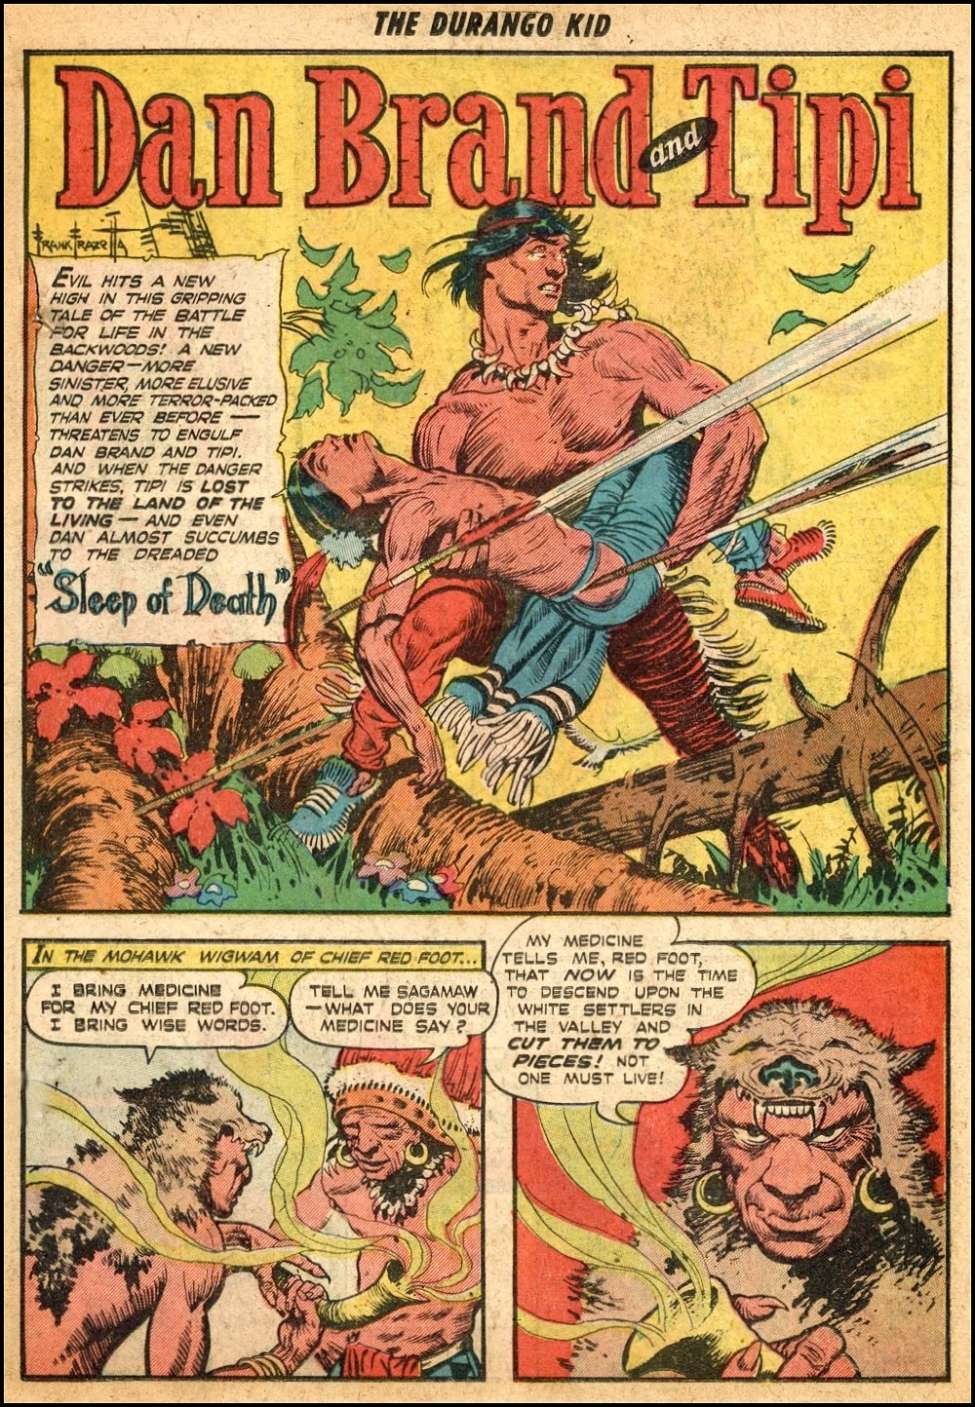 Comic Book Cover For Dan Brand And Tipi Pt. 2 (Frank Frazetta)